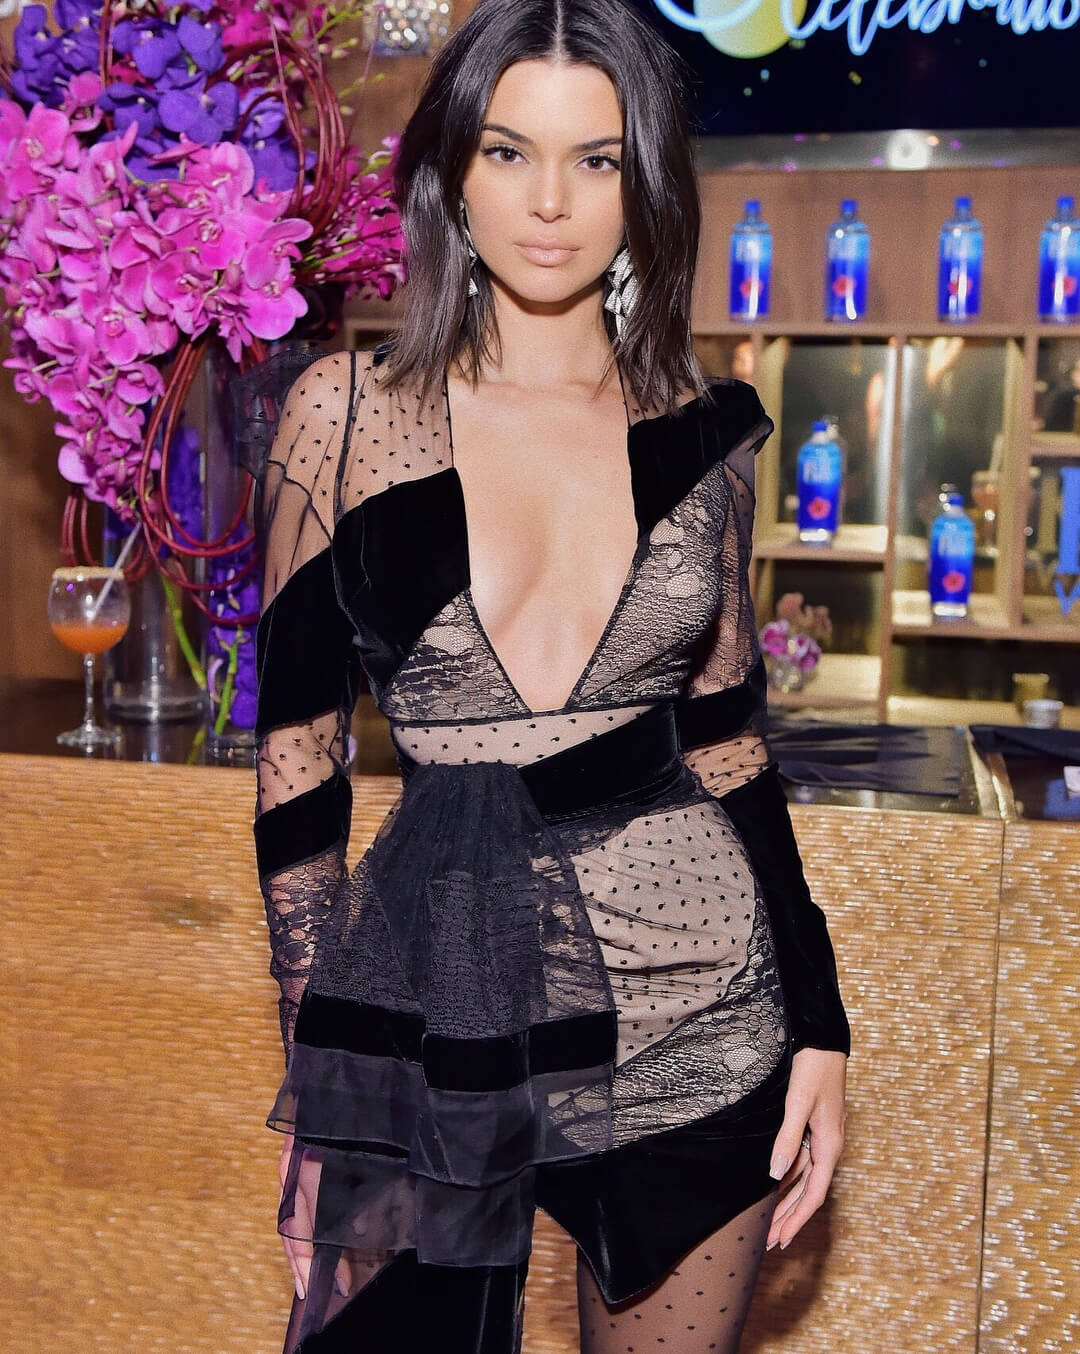 Where is Kendall Jenner, if not at Fashion Week?